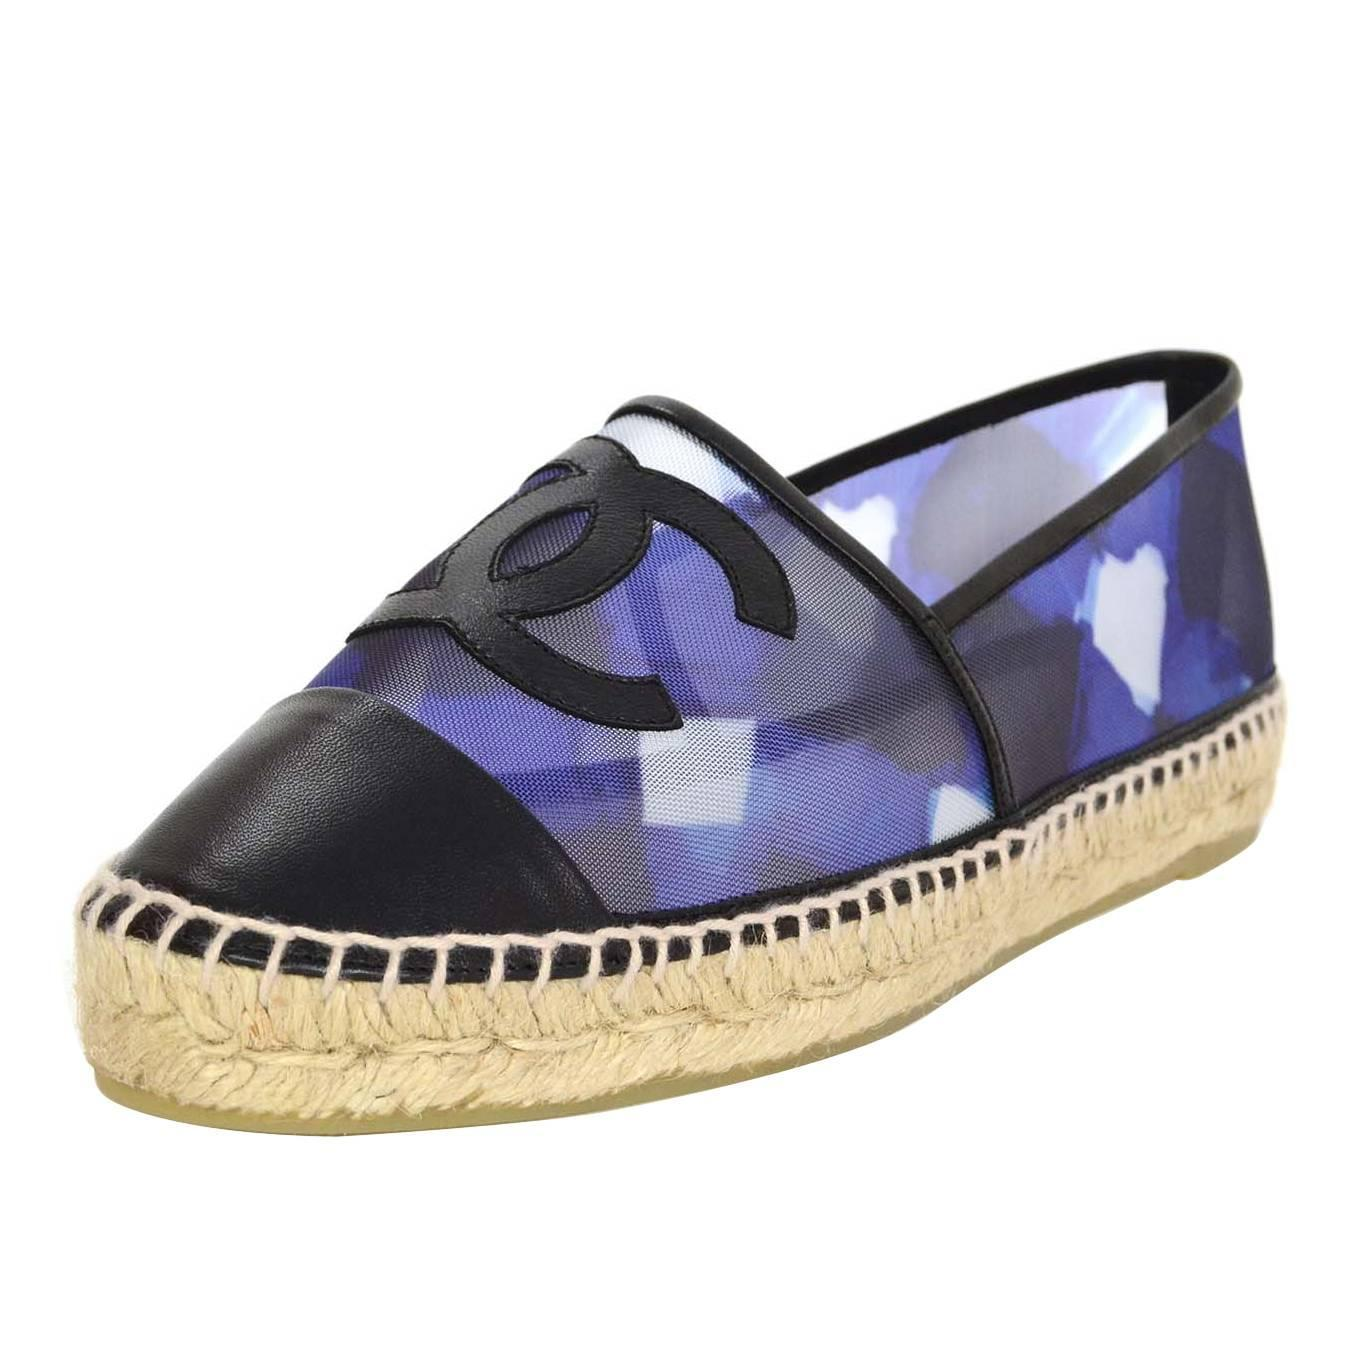 Chanel New 2016 Blue Mesh And Black Leather Cc Espadrilles